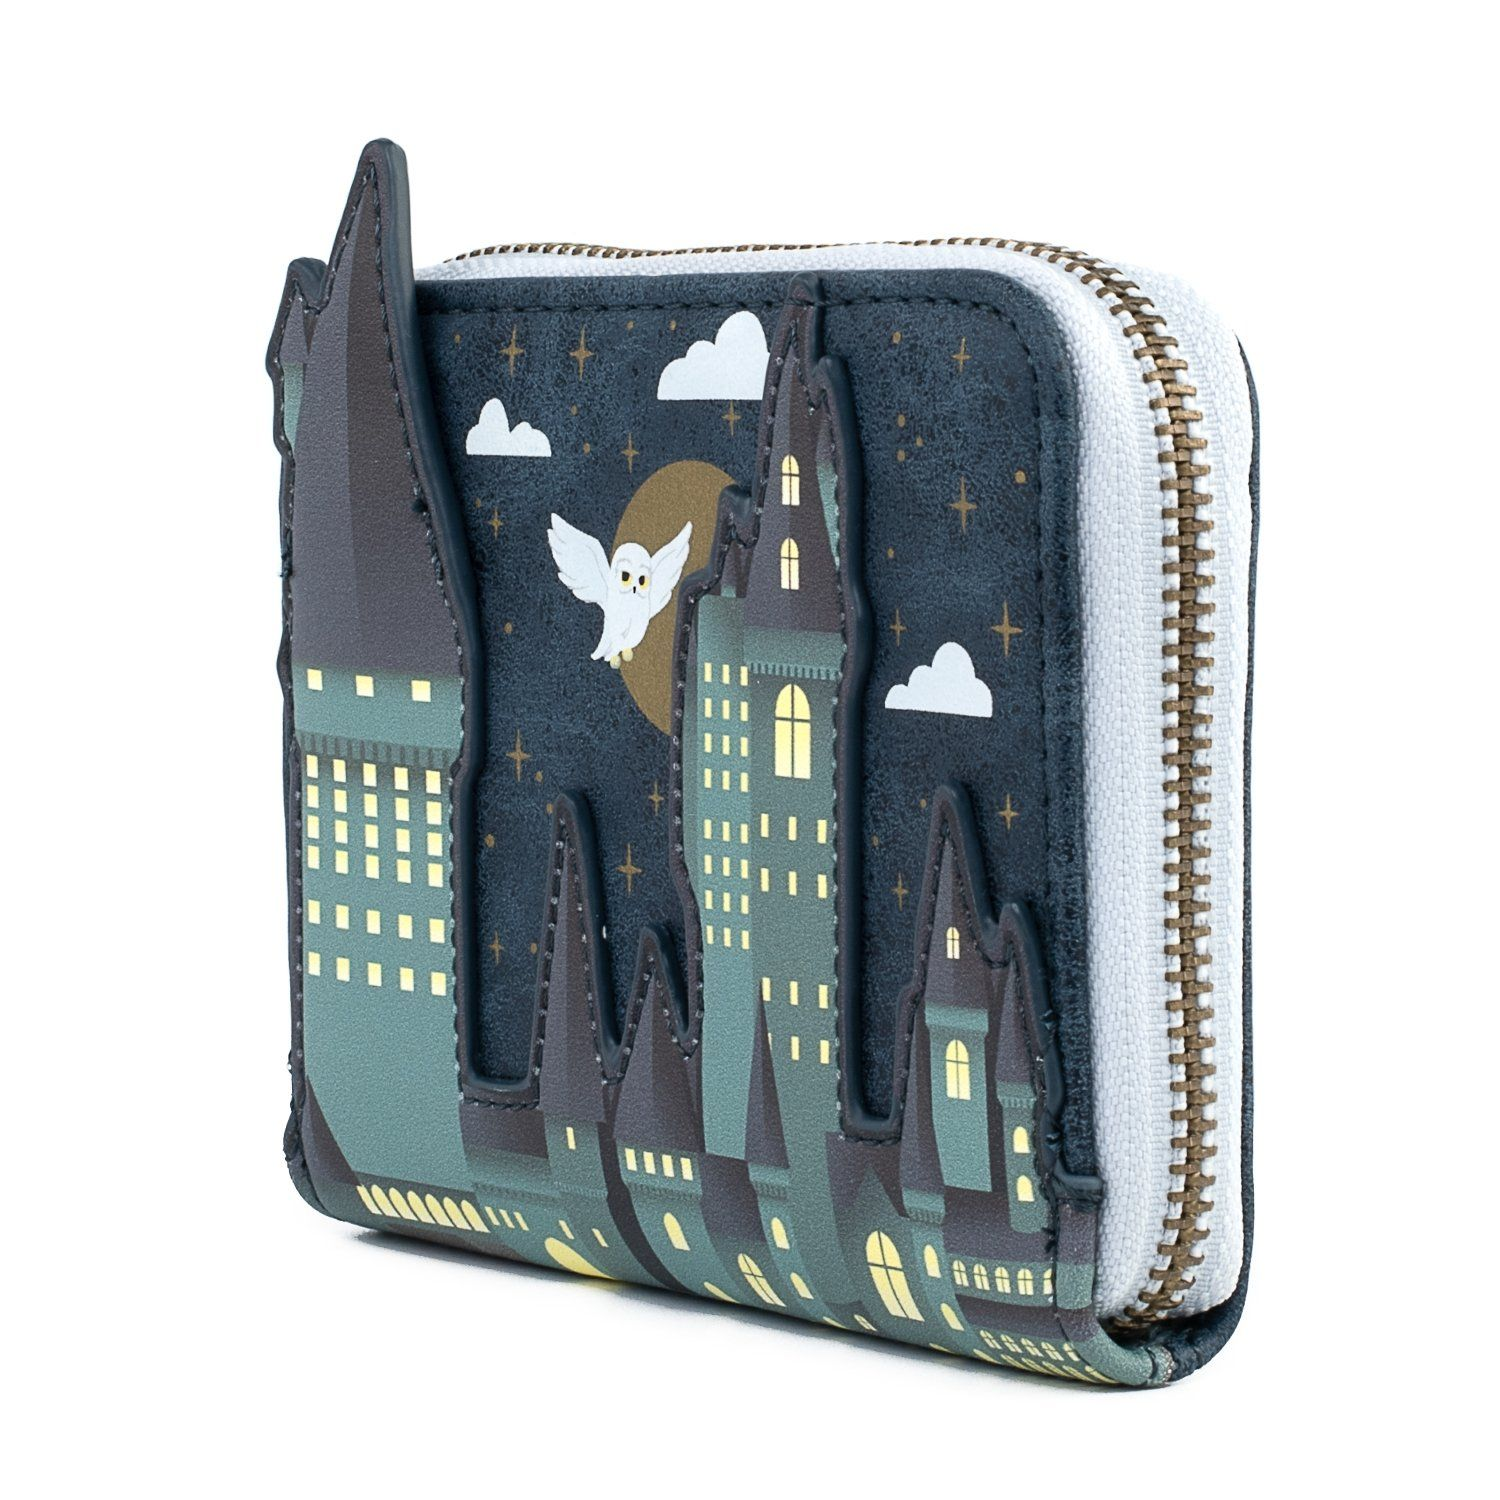 """Hogwarts was a large, seven-storey building supported by magic, and was often regarded as the finest wizarding school in the world. Acting as the primary location for the Harry Potter stories, it was filled with magical wonder and awe, full of secrets to discover and adventures to be had. Constructed from faux leather, this 5"""" Zip-Around Wallet features the magical wizarding school in a custom-shaped design, with the building popping out from the wallet thanks to the embroidrered and applique de"""